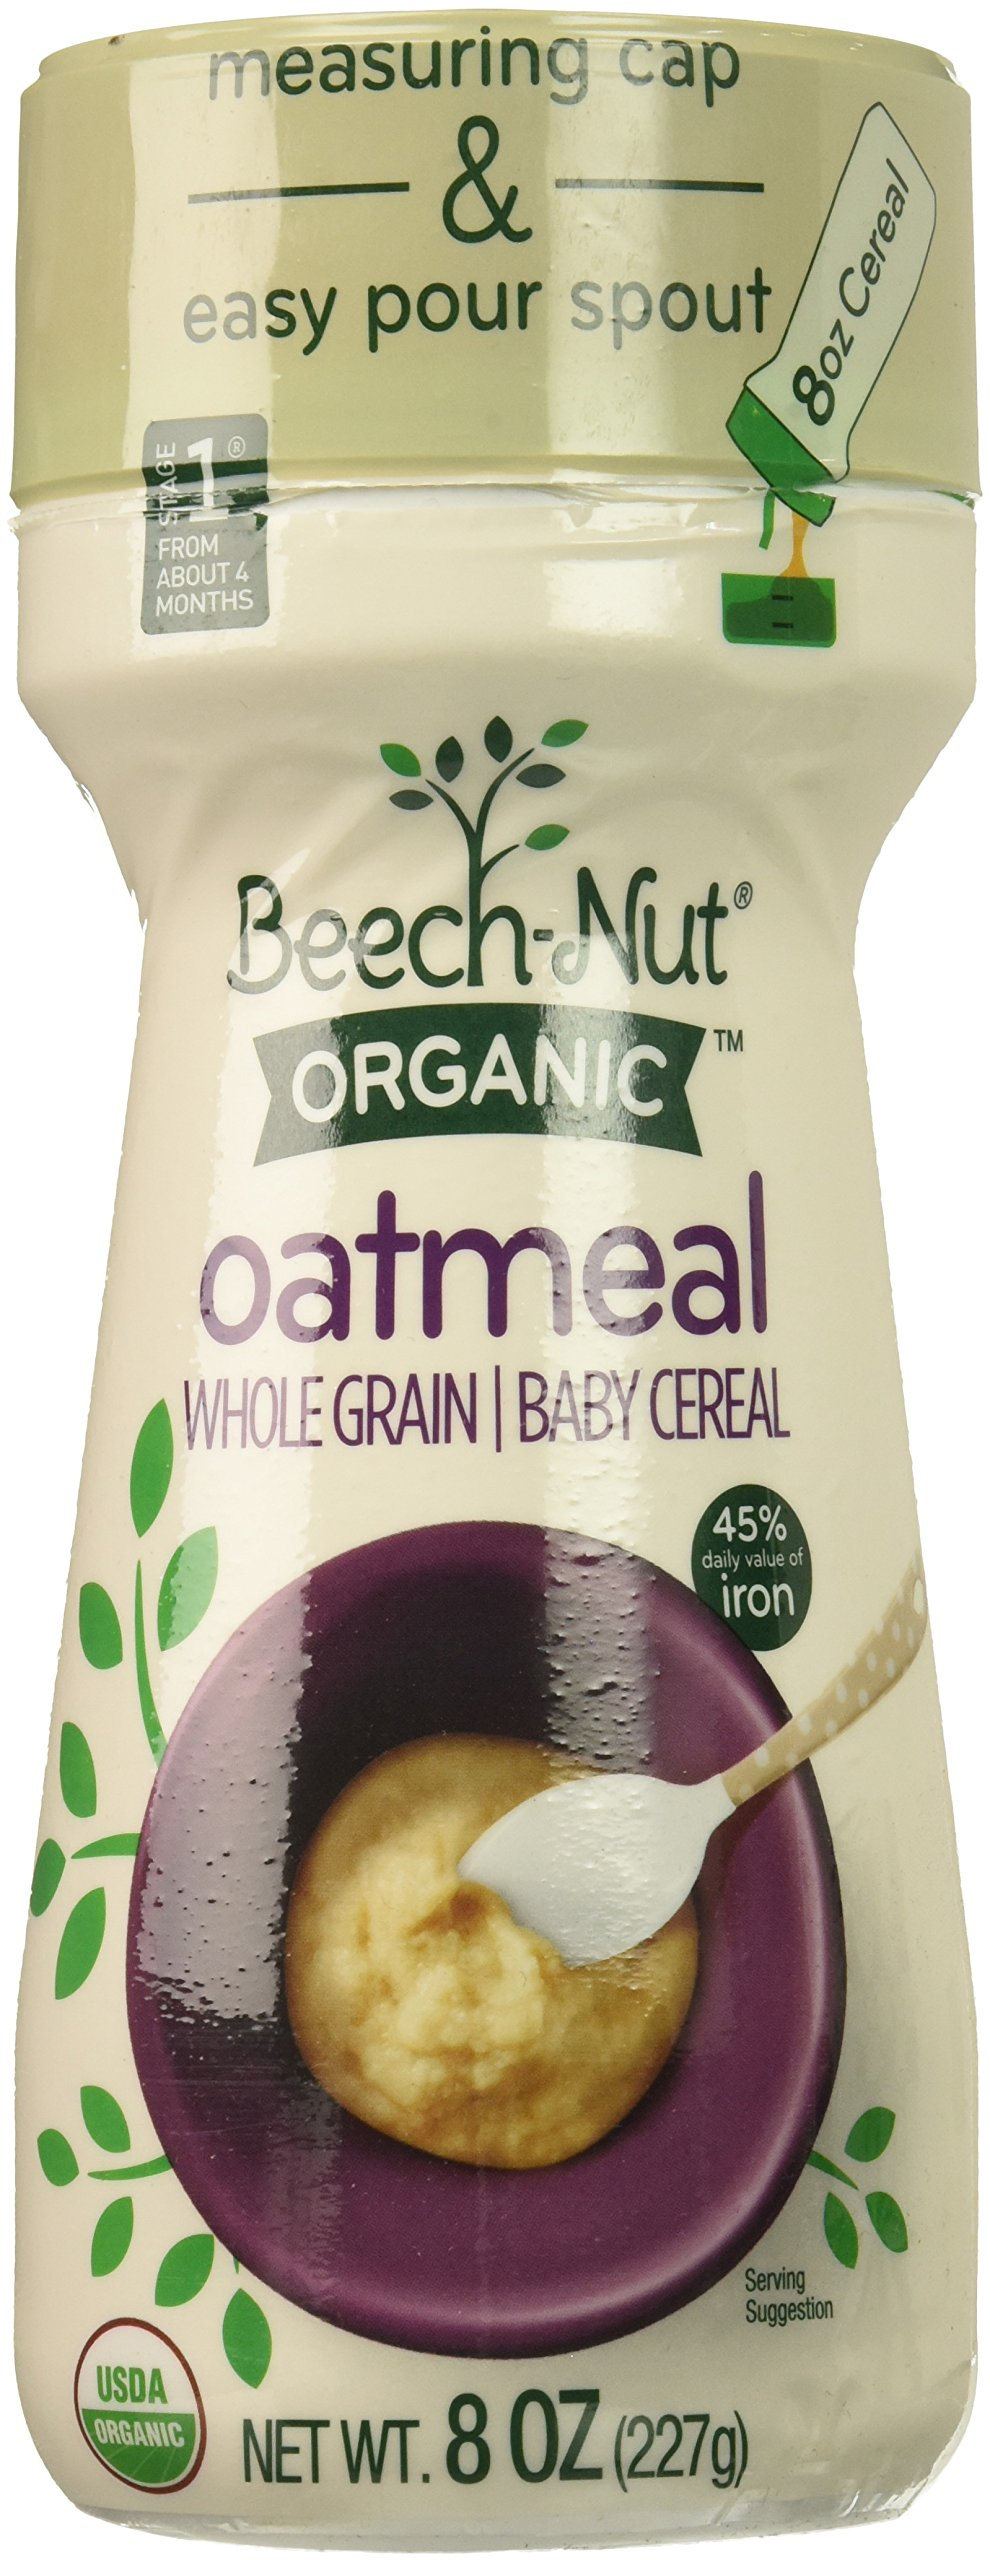 Beech-Nut Organic Oatmeal Baby Cereal Canister, 8 Ounce